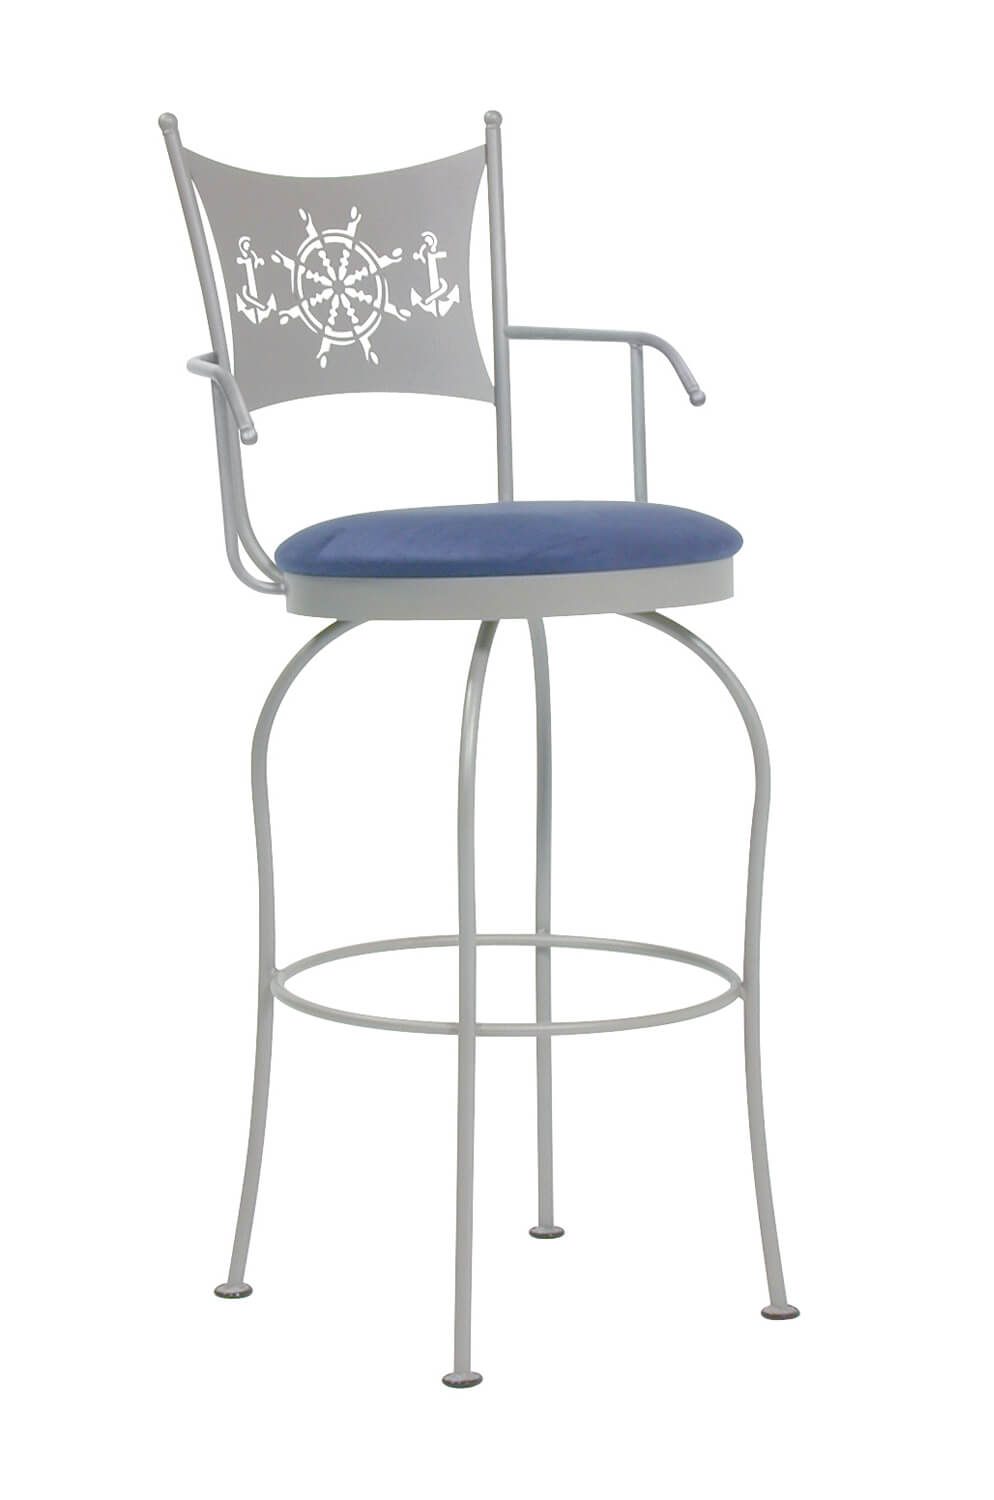 Incredible Art Collection 2 Swivel Stool With Arms Gmtry Best Dining Table And Chair Ideas Images Gmtryco